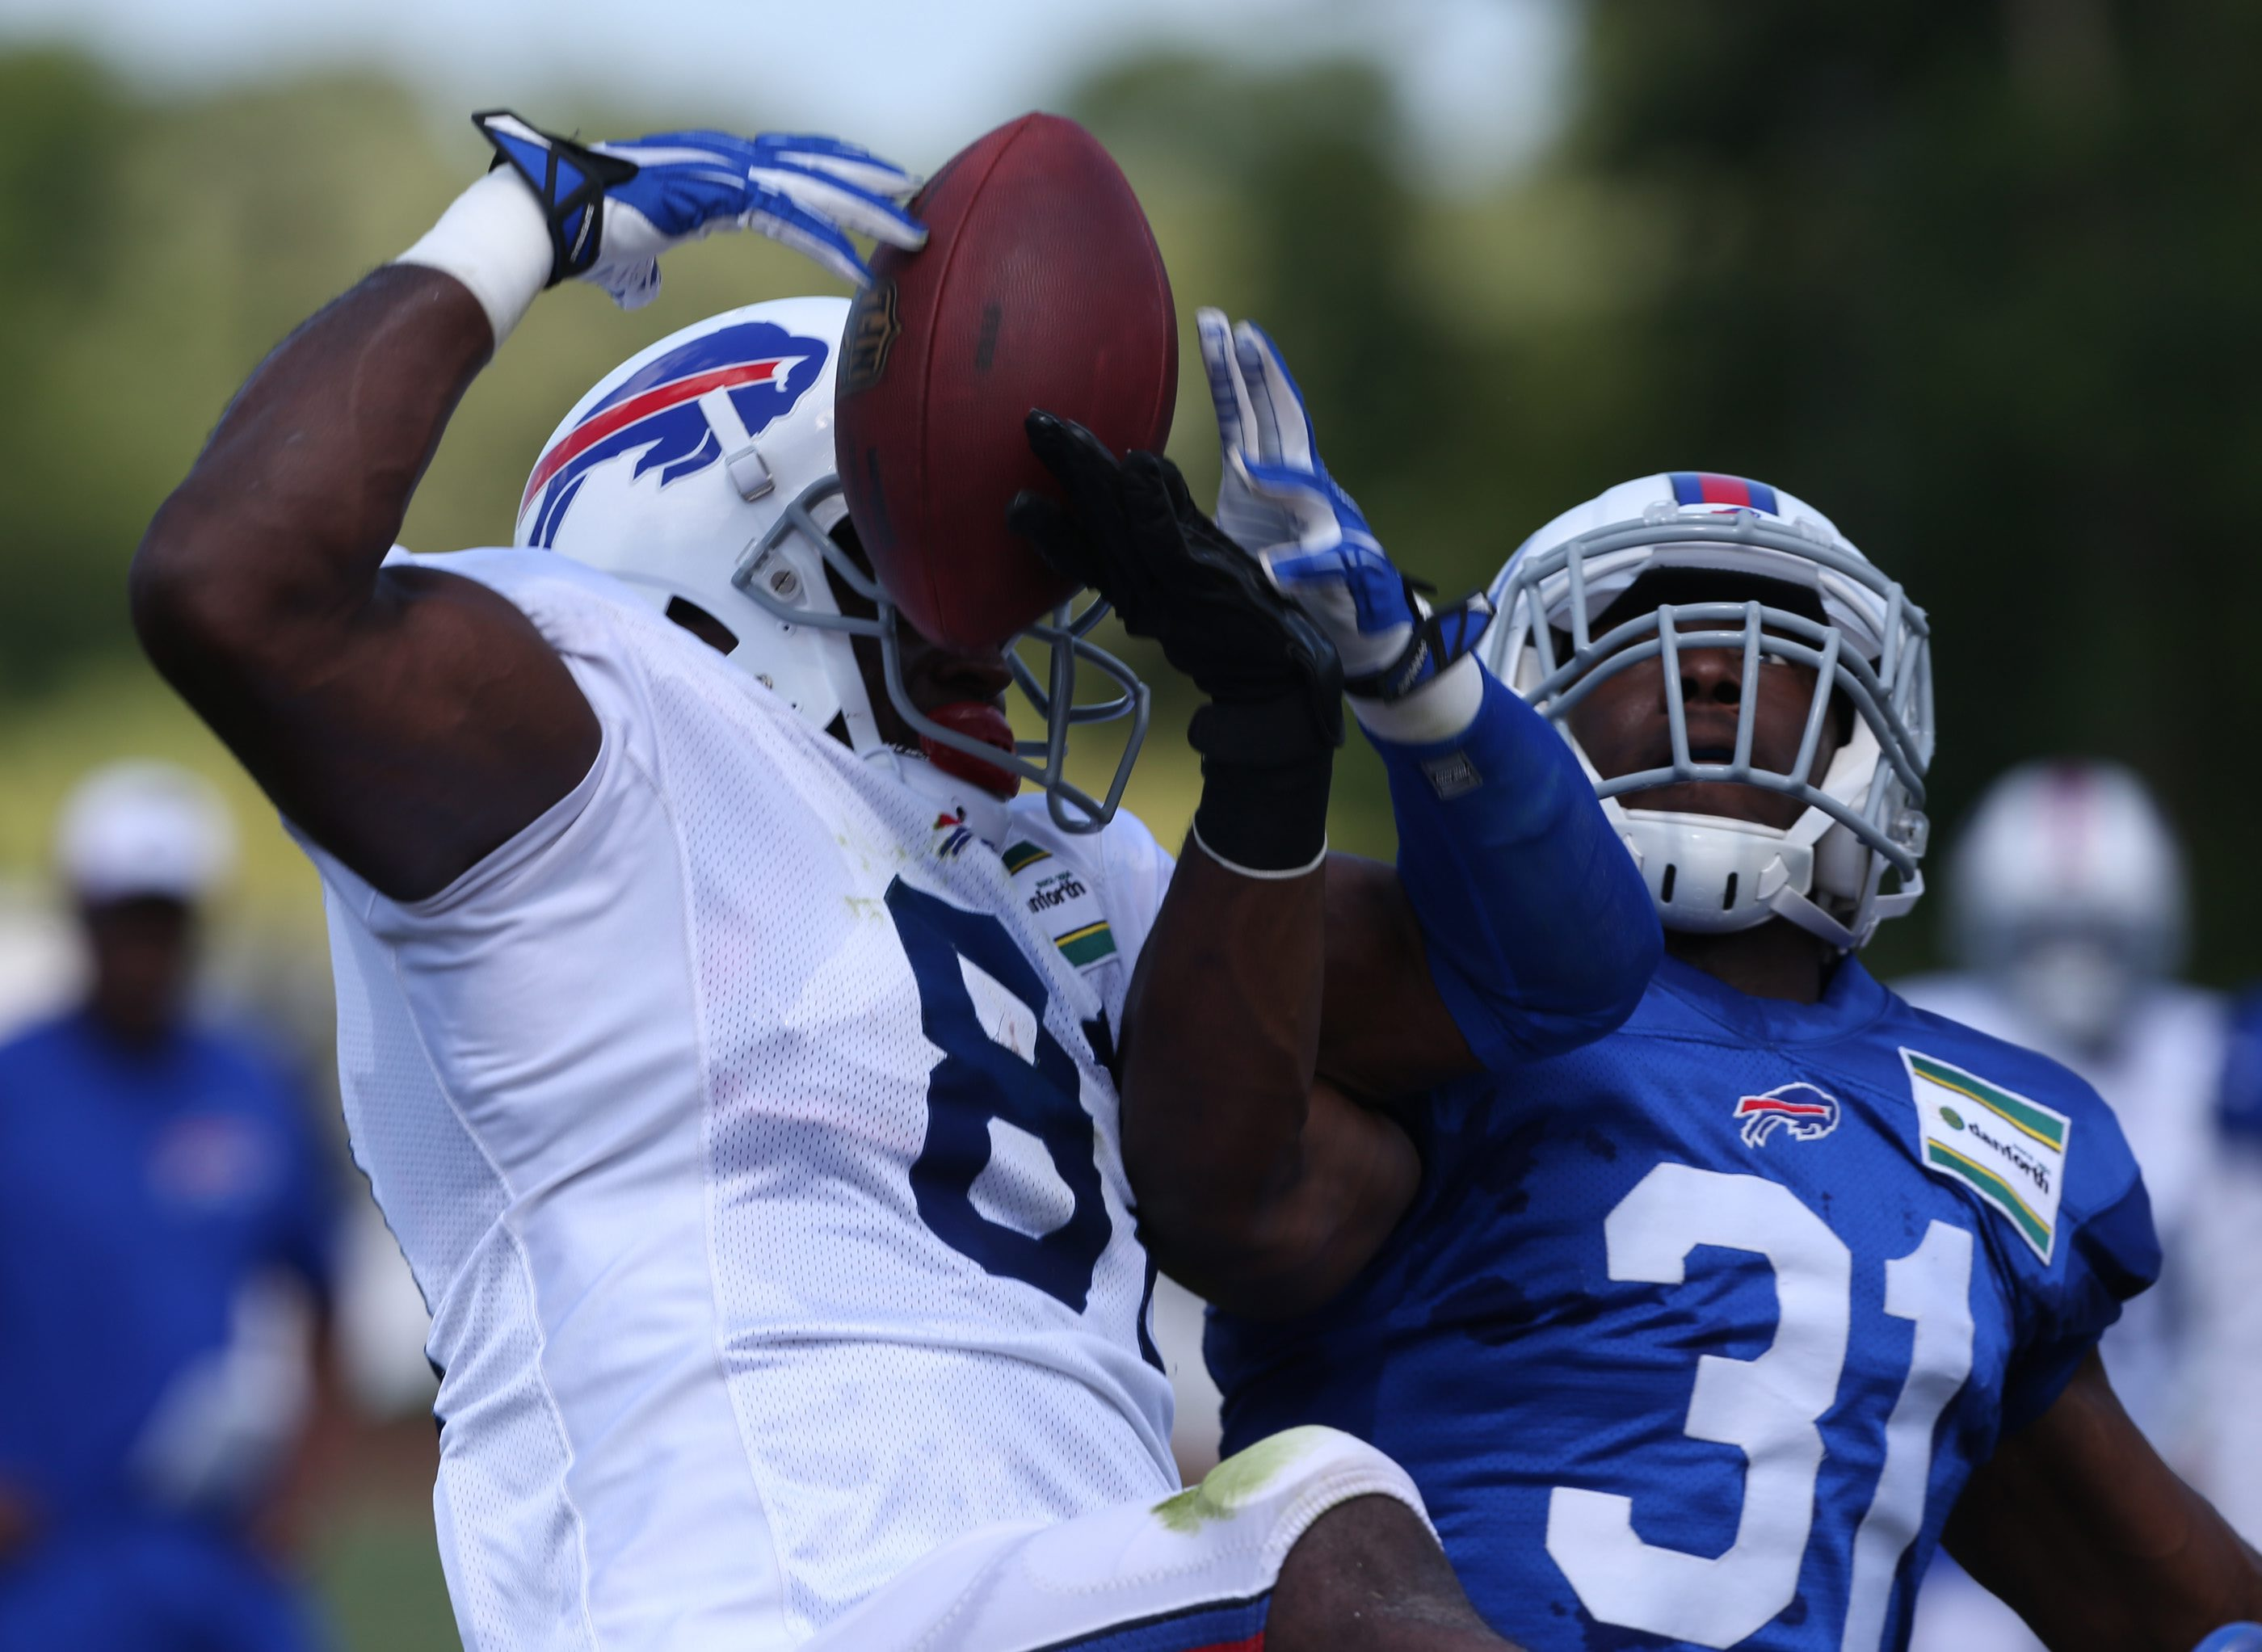 Buffalo Bills free safety Kenny Ladler (31) breaks up a pass intended for wide receiver Marcus Easley (81) during last year's training camp.